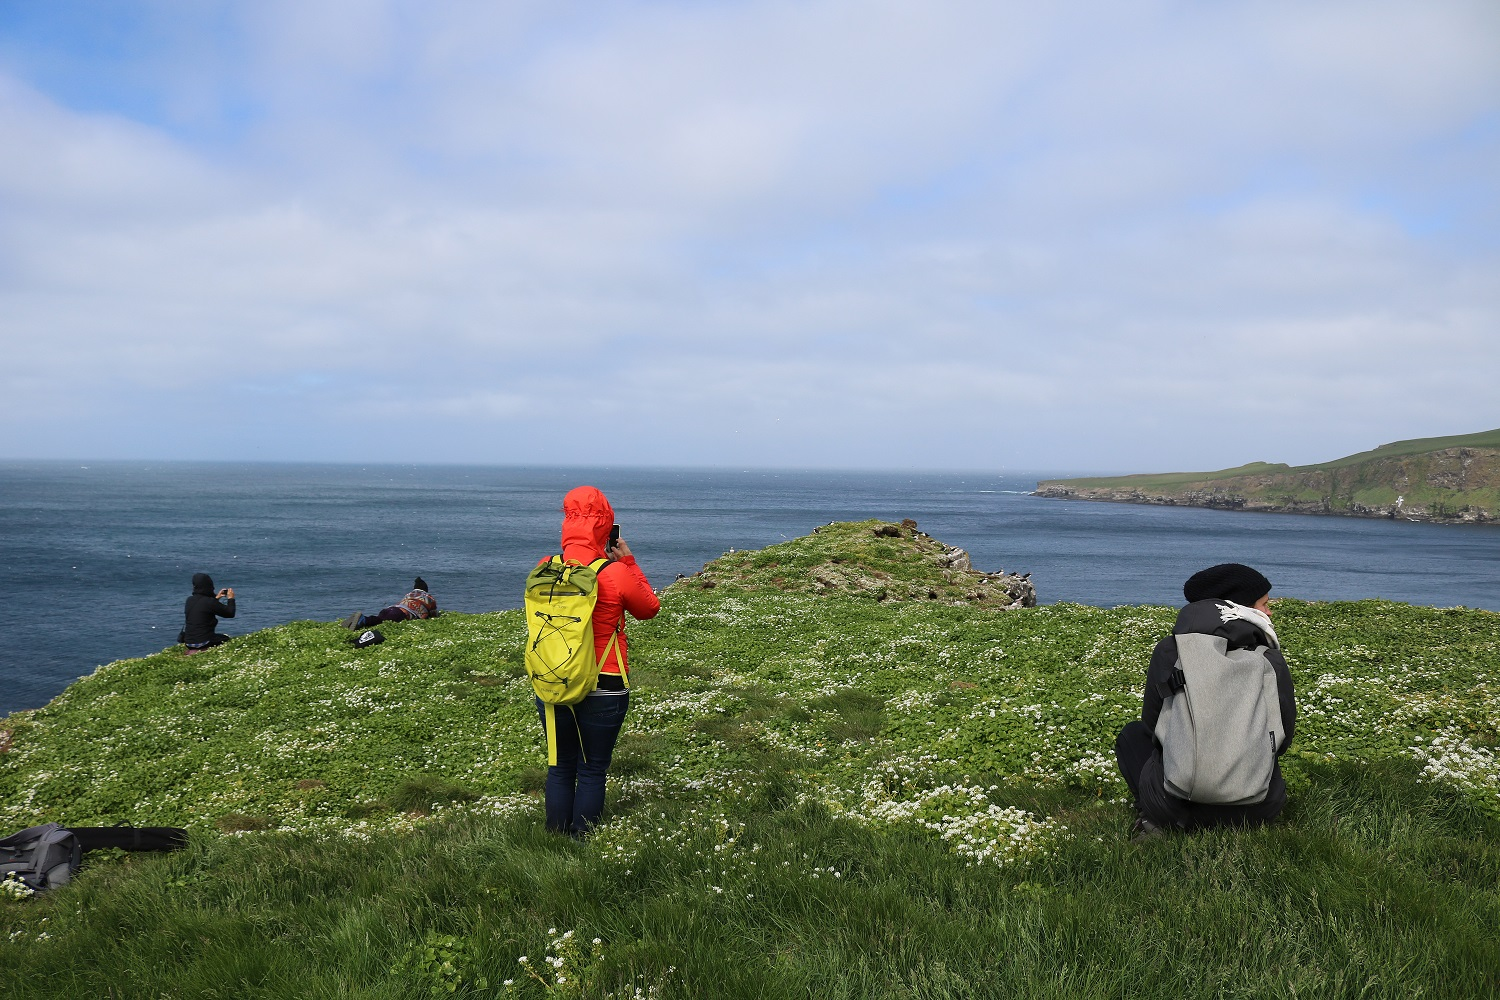 Day trip to the Island of Grimsey, in the artic circle